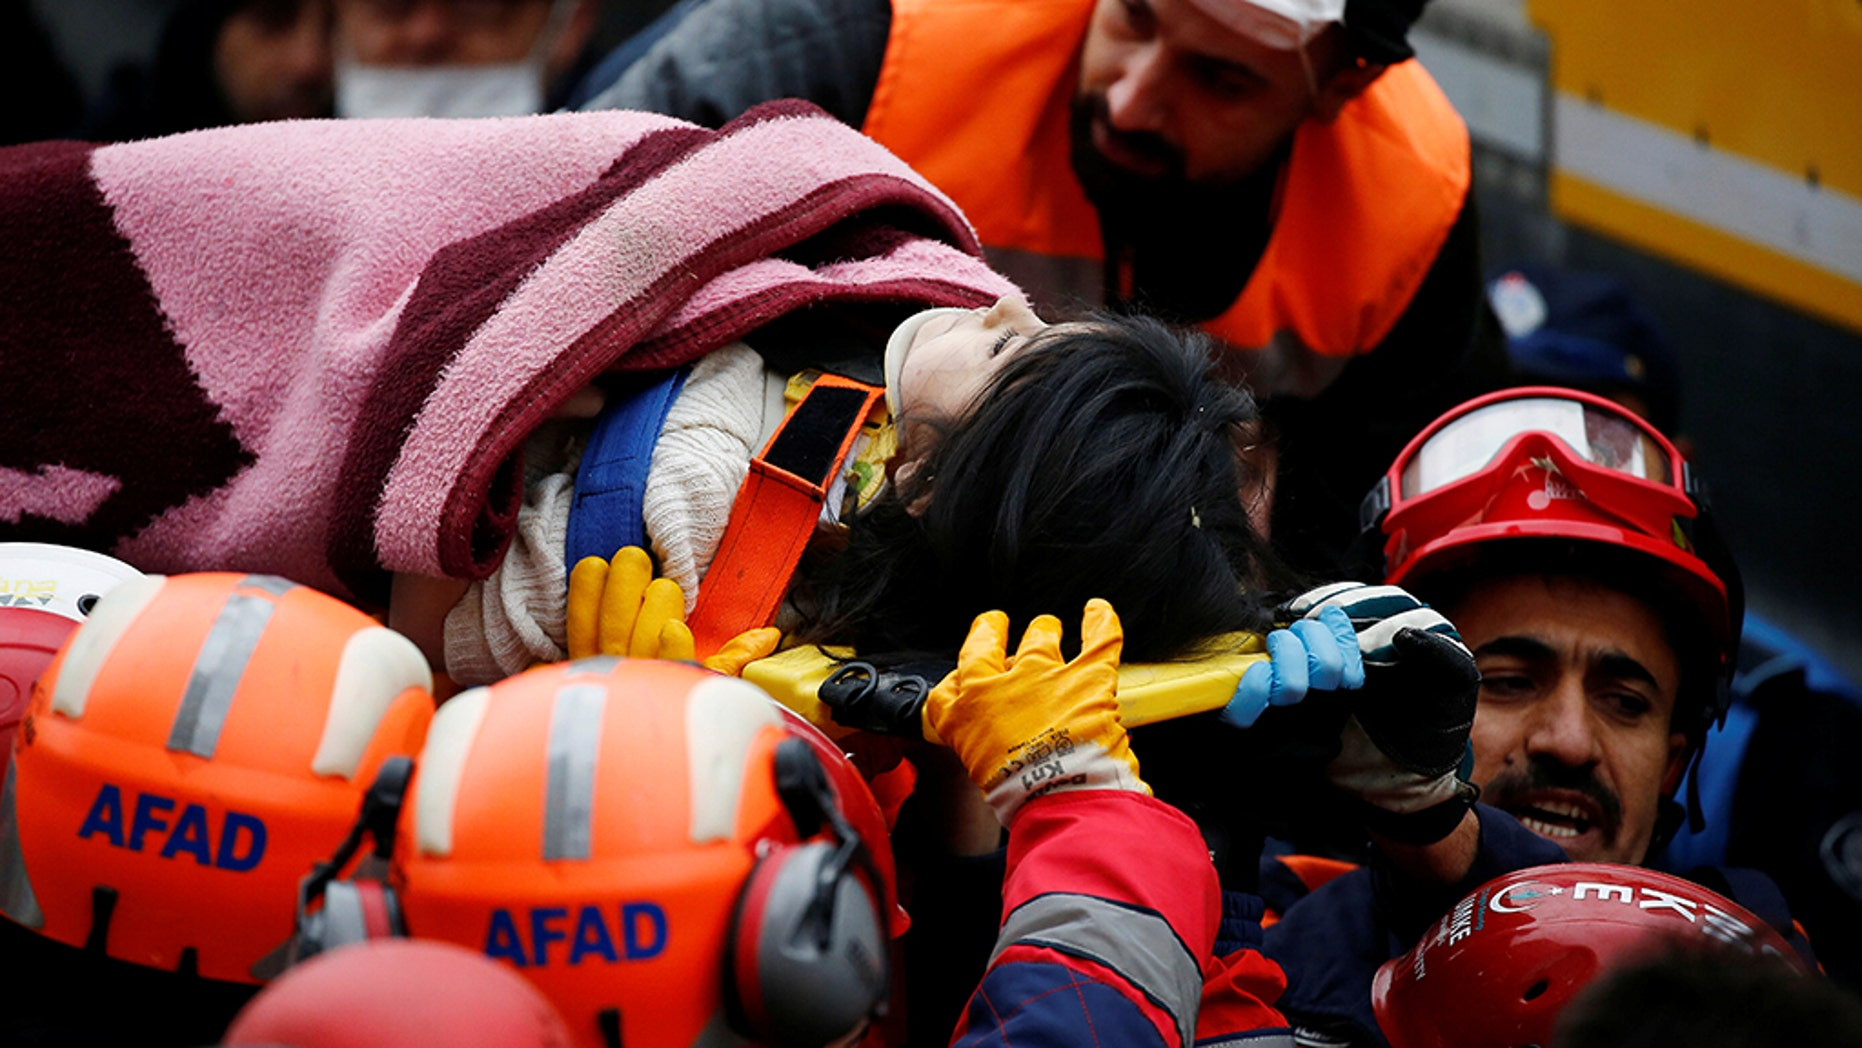 Turkish president vows action after fatal building collapse